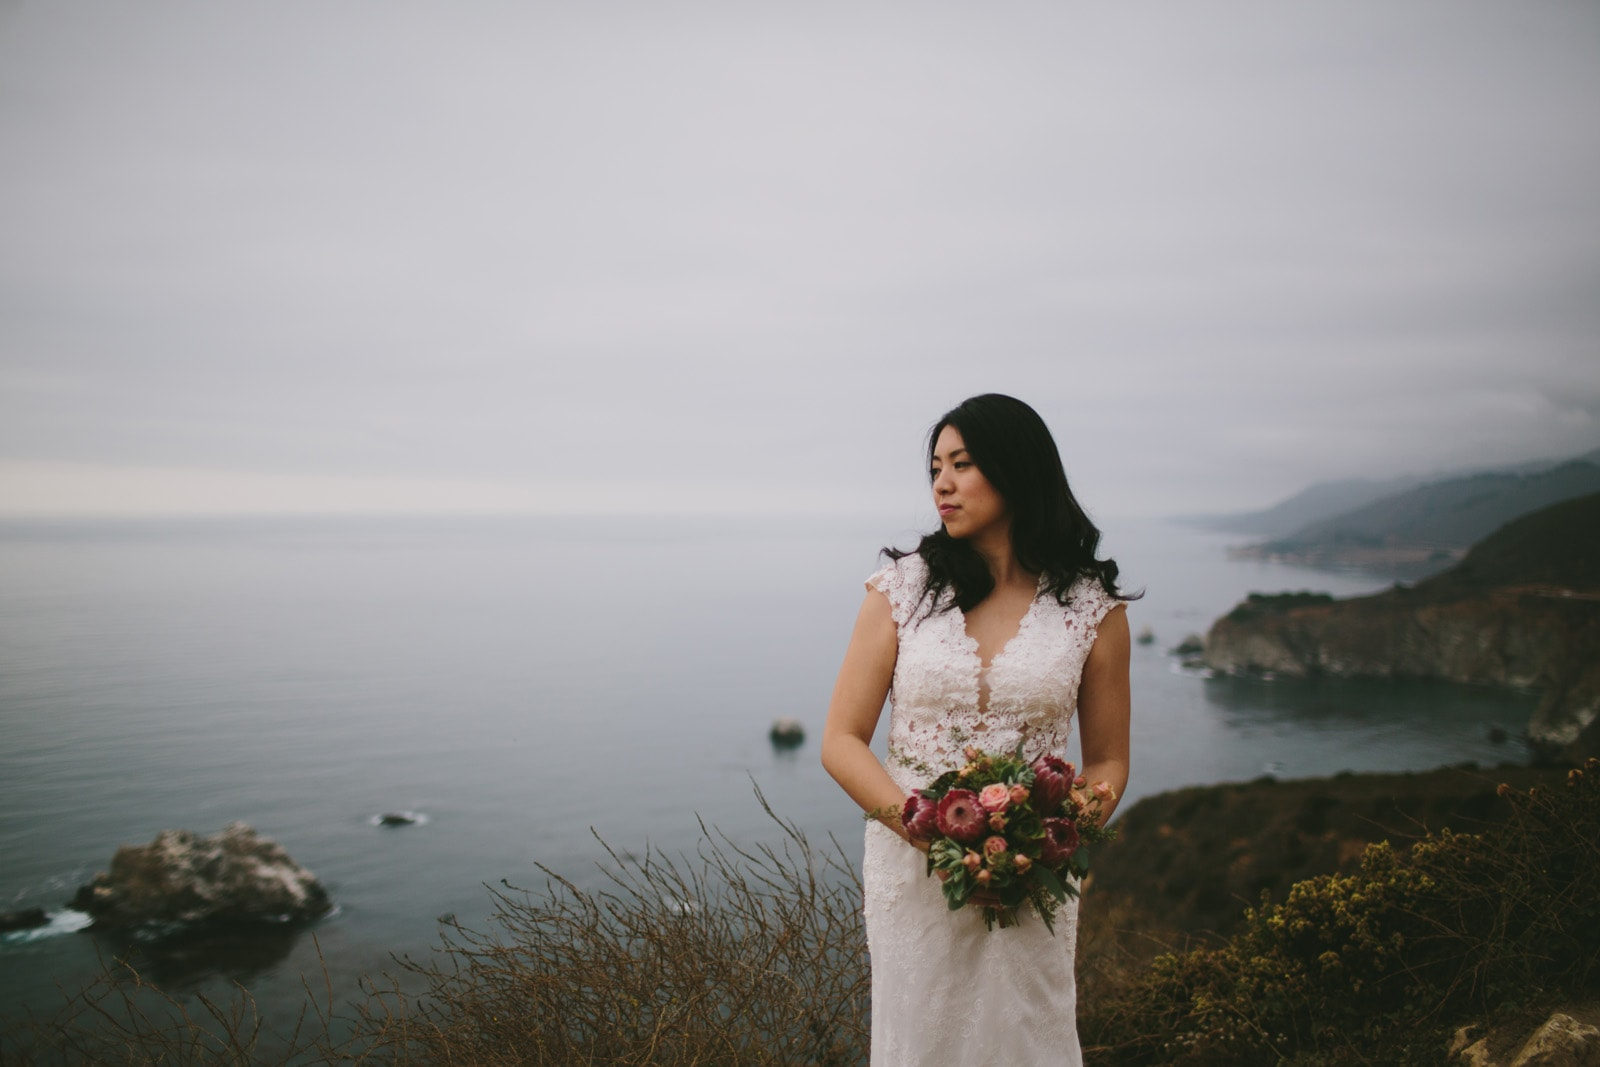 Glen_Oaks_Big_Sur_Wedding_032